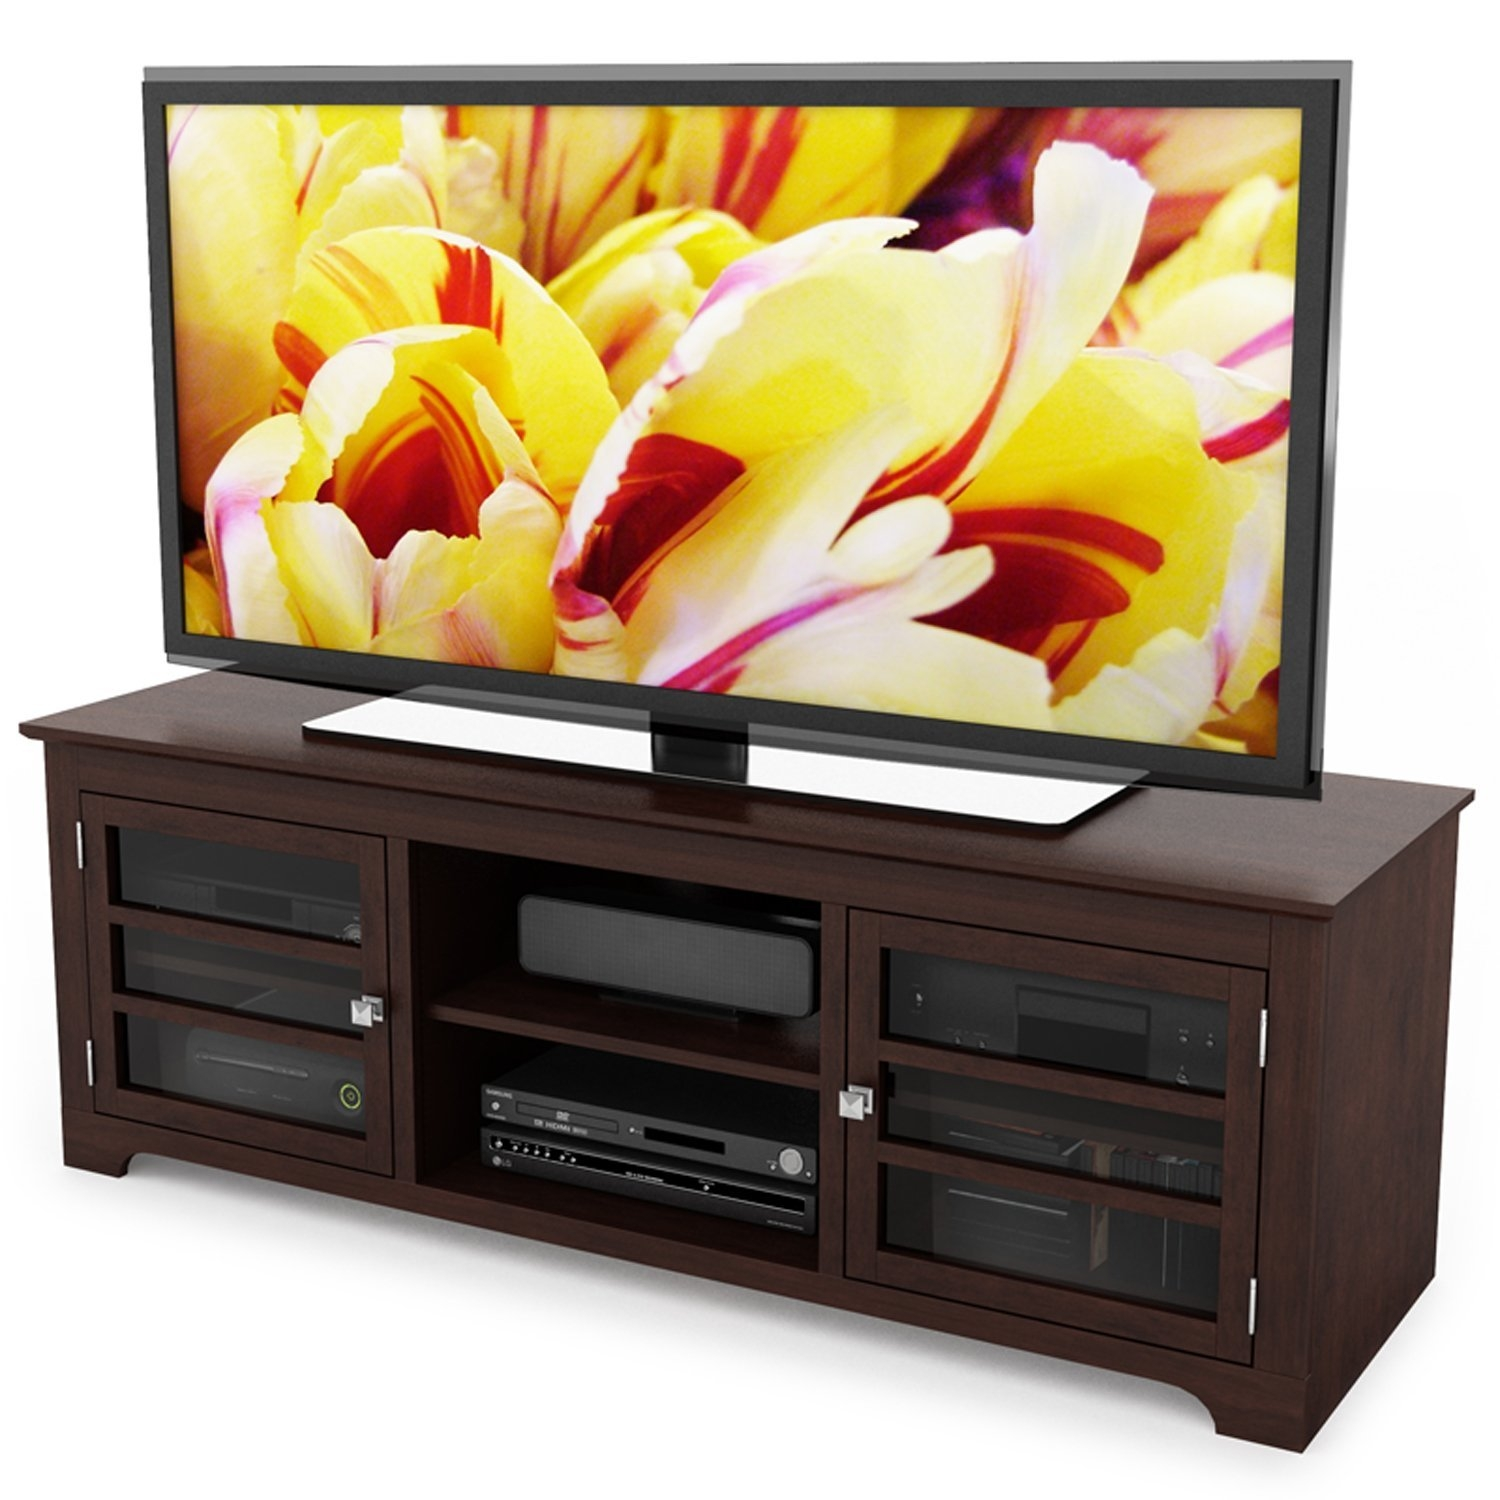 Dark Espresso TV Stand With Glass Doors   Fits Up To 68 Inch TV